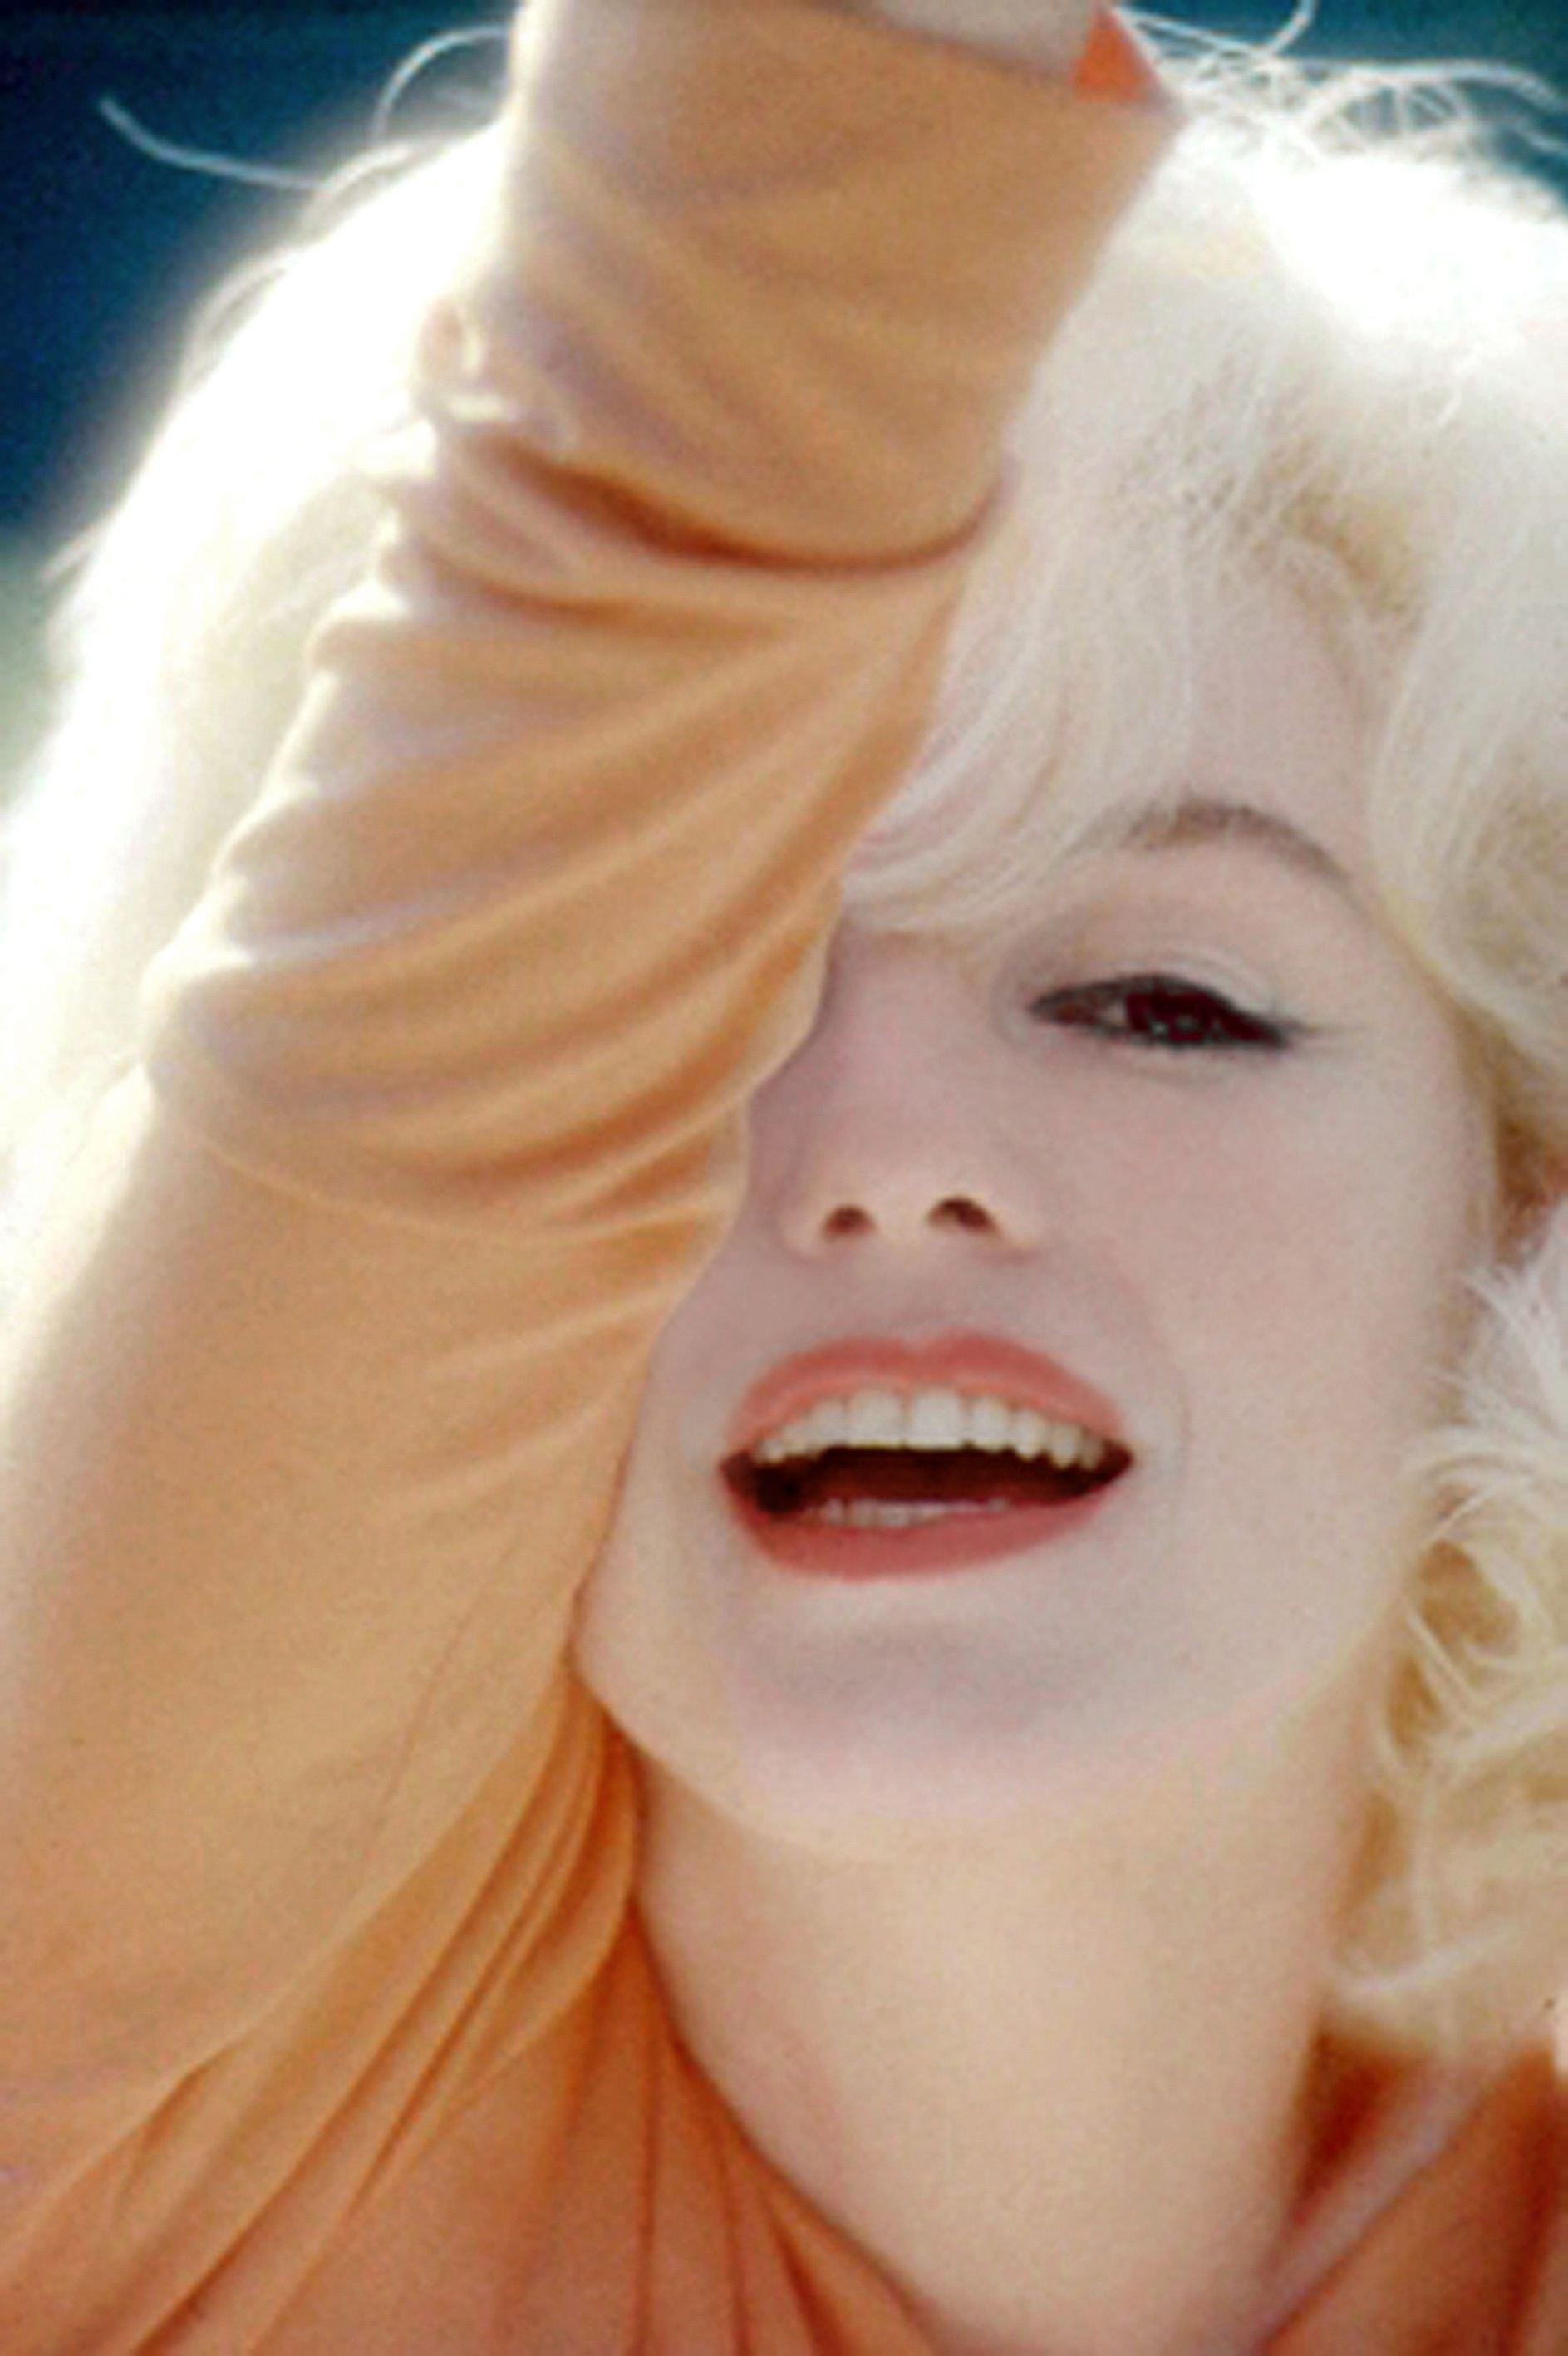 'Marilyn Monroe, Beverly Hills, 1962' by Willy Rizzo